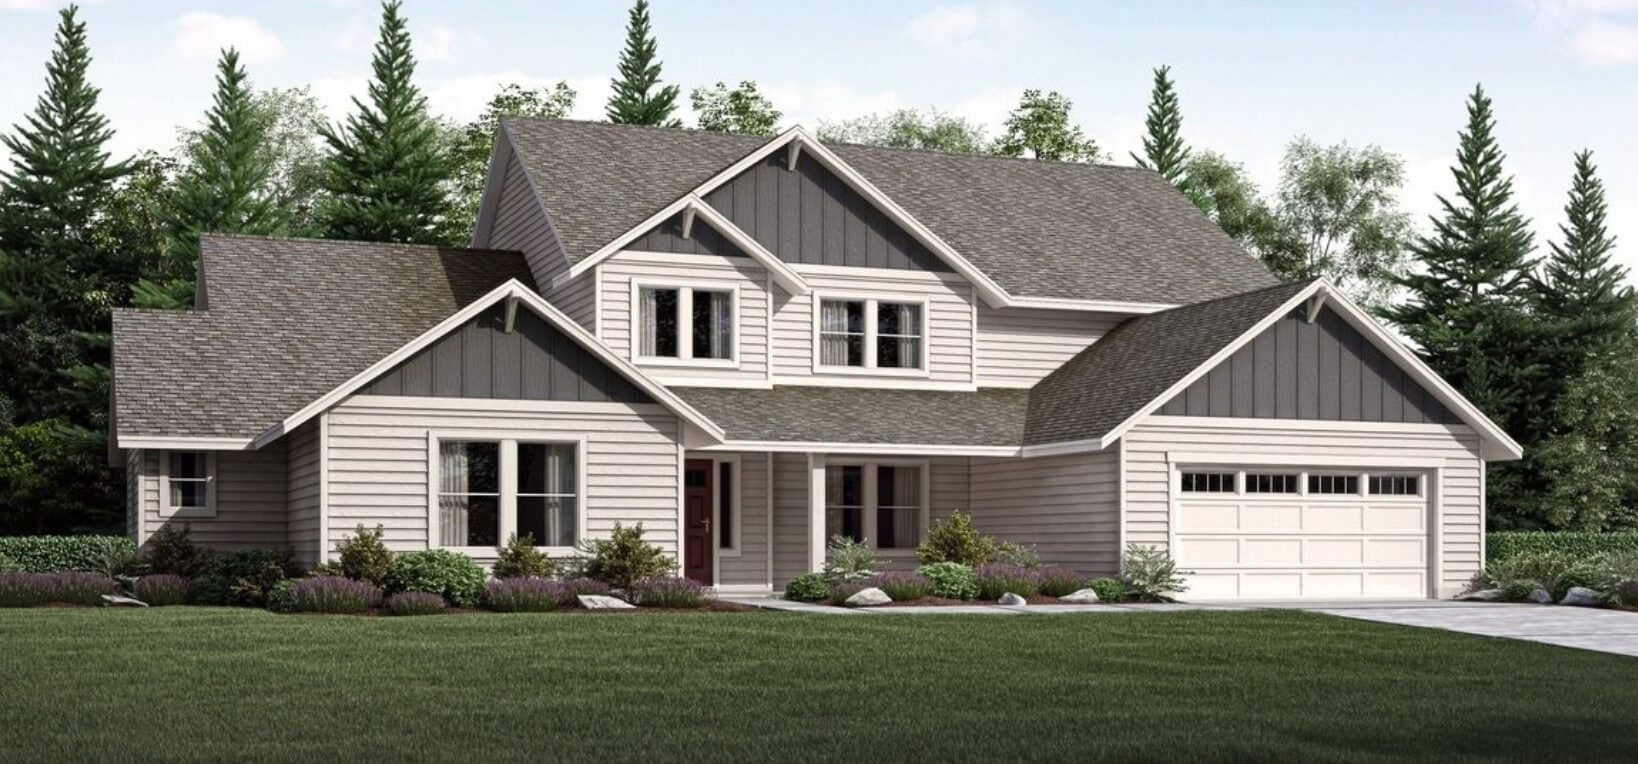 8 Floor Plans Perfect for Larger, Multigenerational Families on